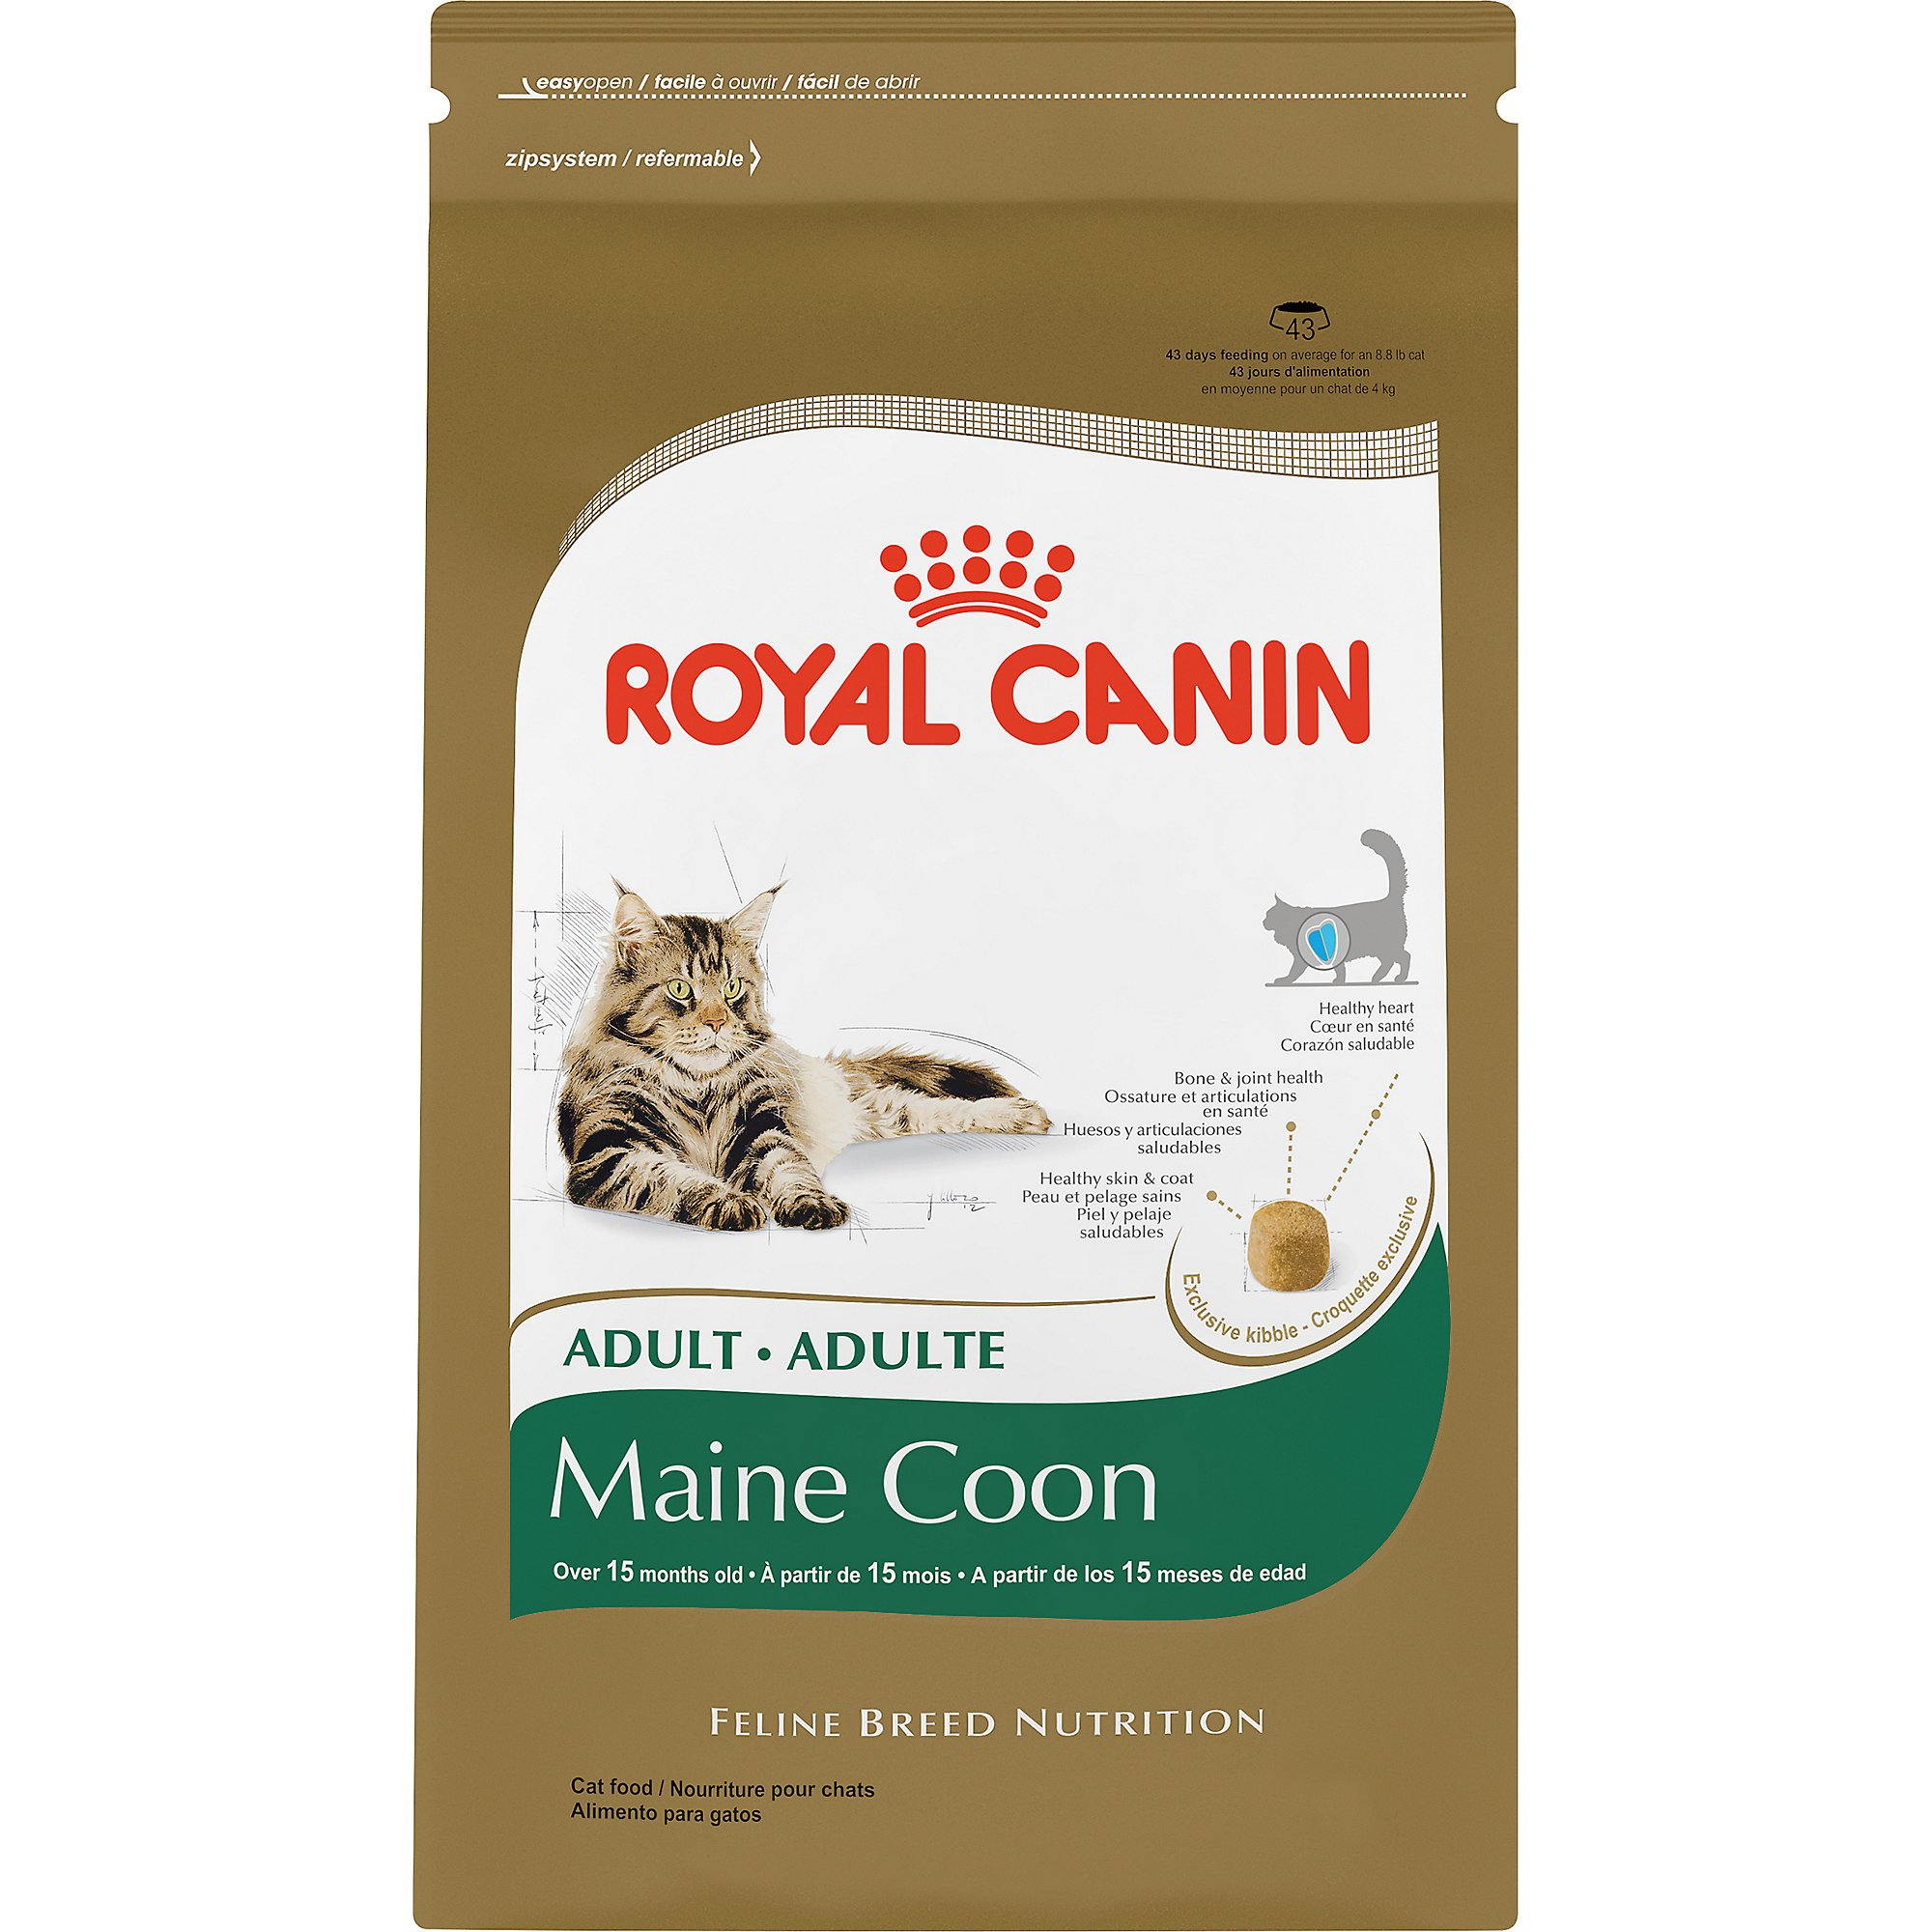 royal canin feline breed nutrition maine coon adult cat